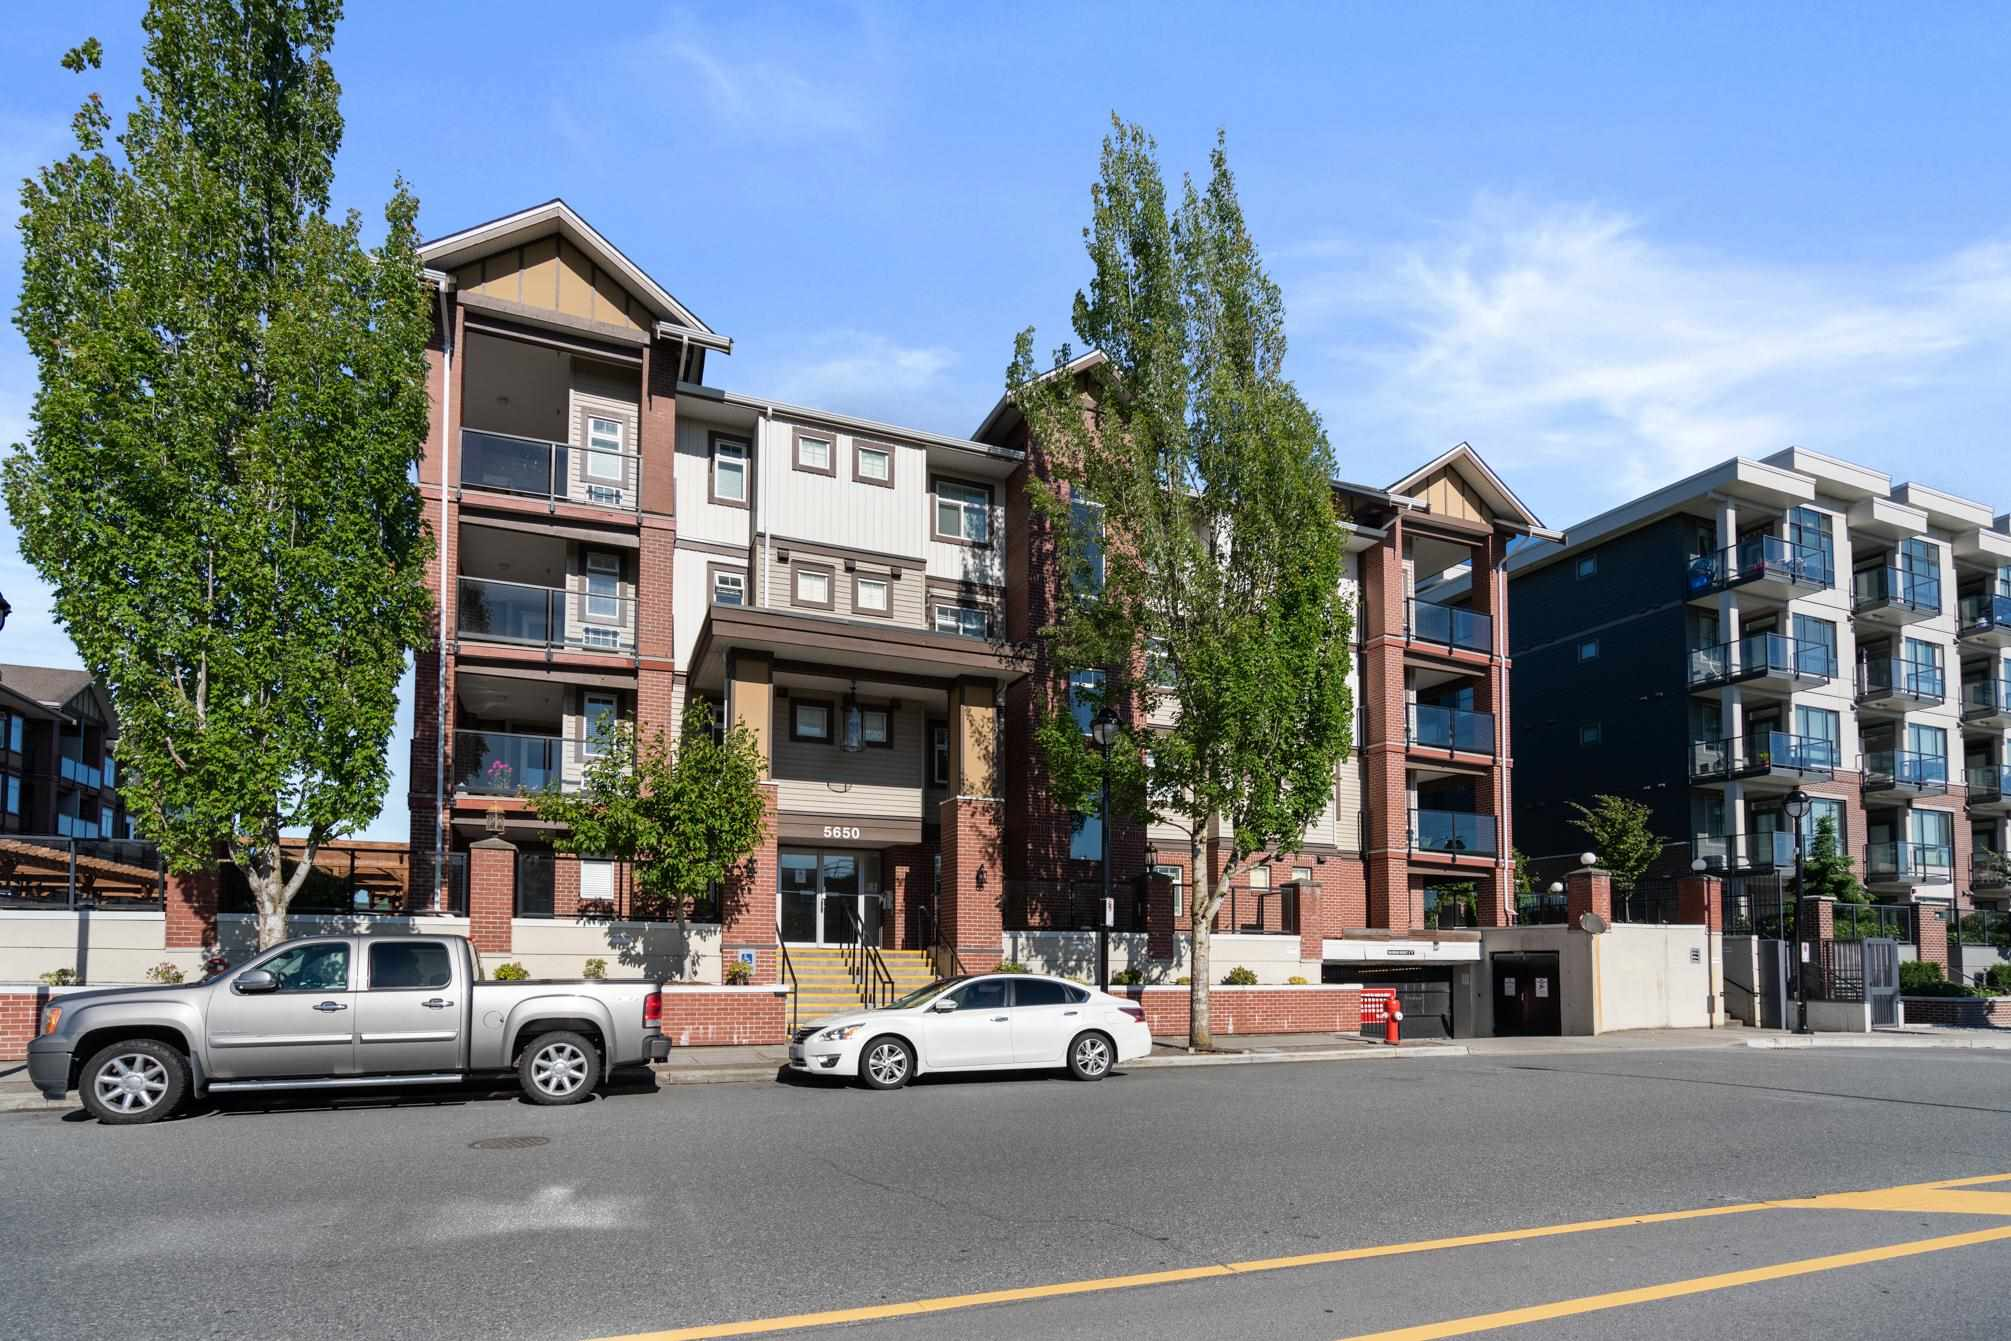 117 5650 201A STREET - Langley City Apartment/Condo for sale, 2 Bedrooms (R2594103) - #1